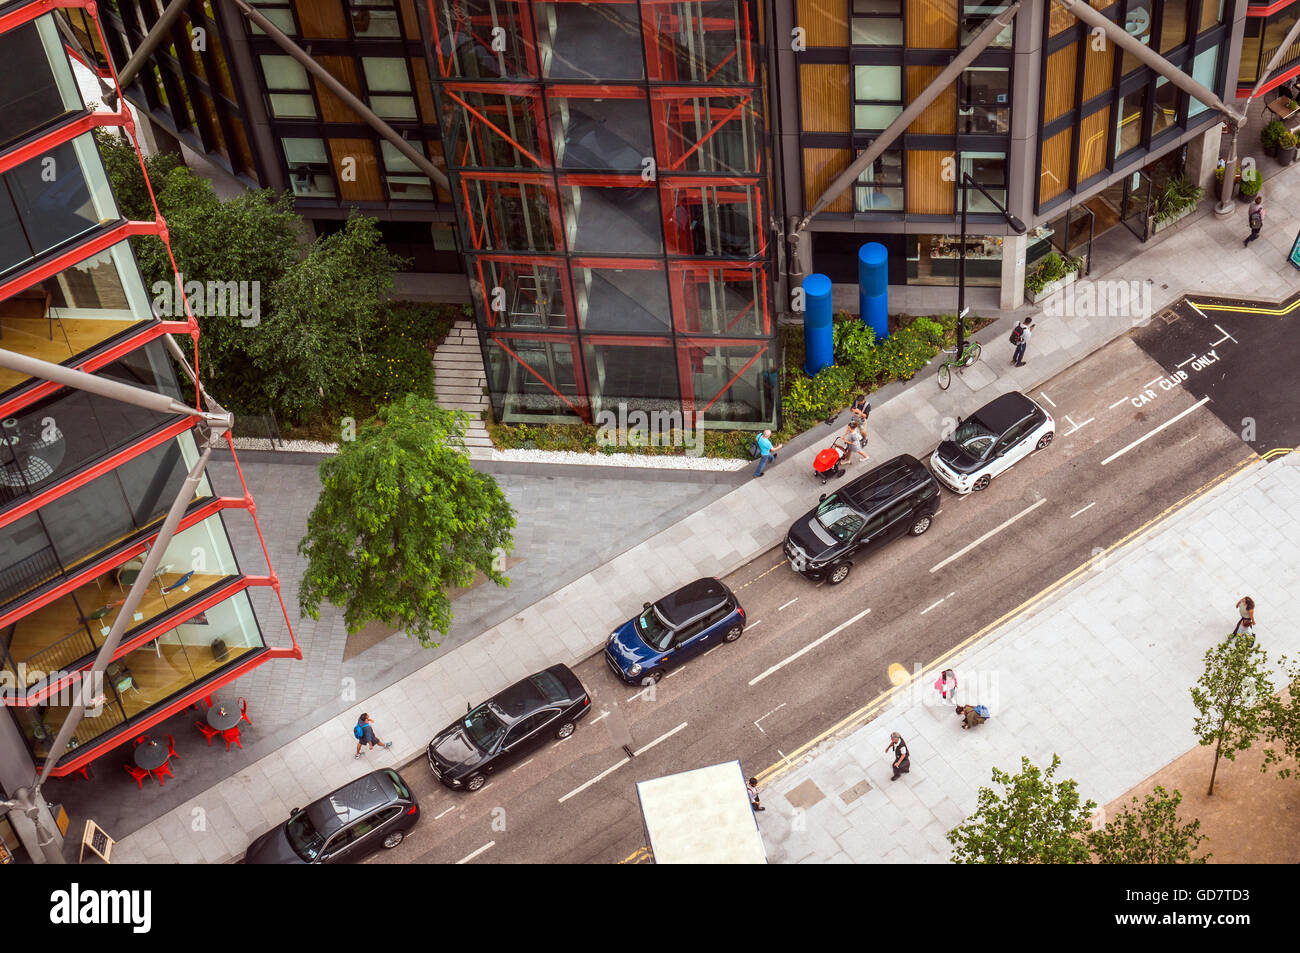 Street view from Tate Modern extension on the South Bank, London, UK - Stock Image